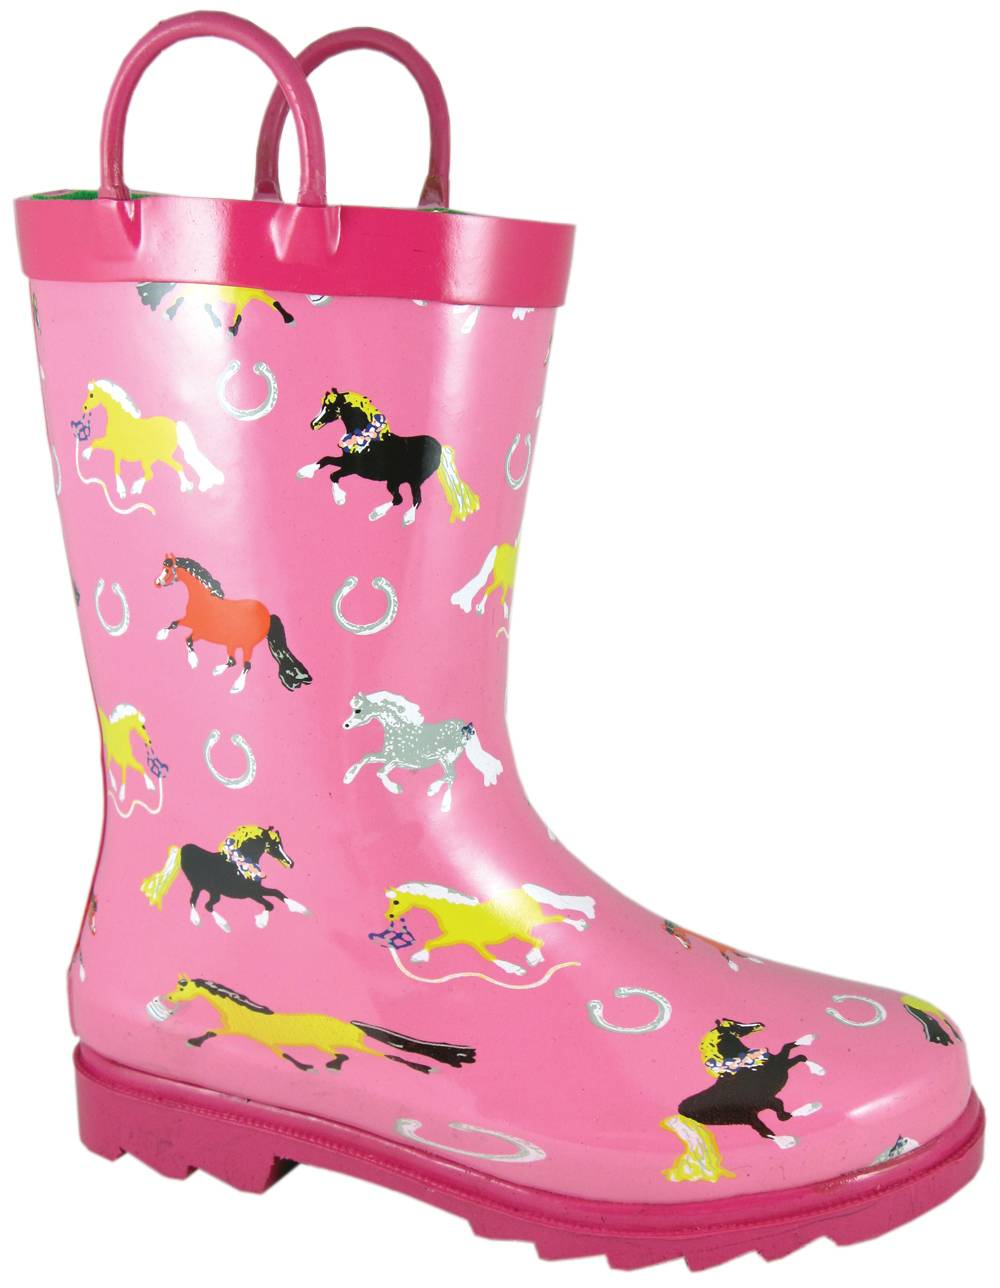 Smoky Boots Show Horse Waterproof Boots - Toddler, Pink